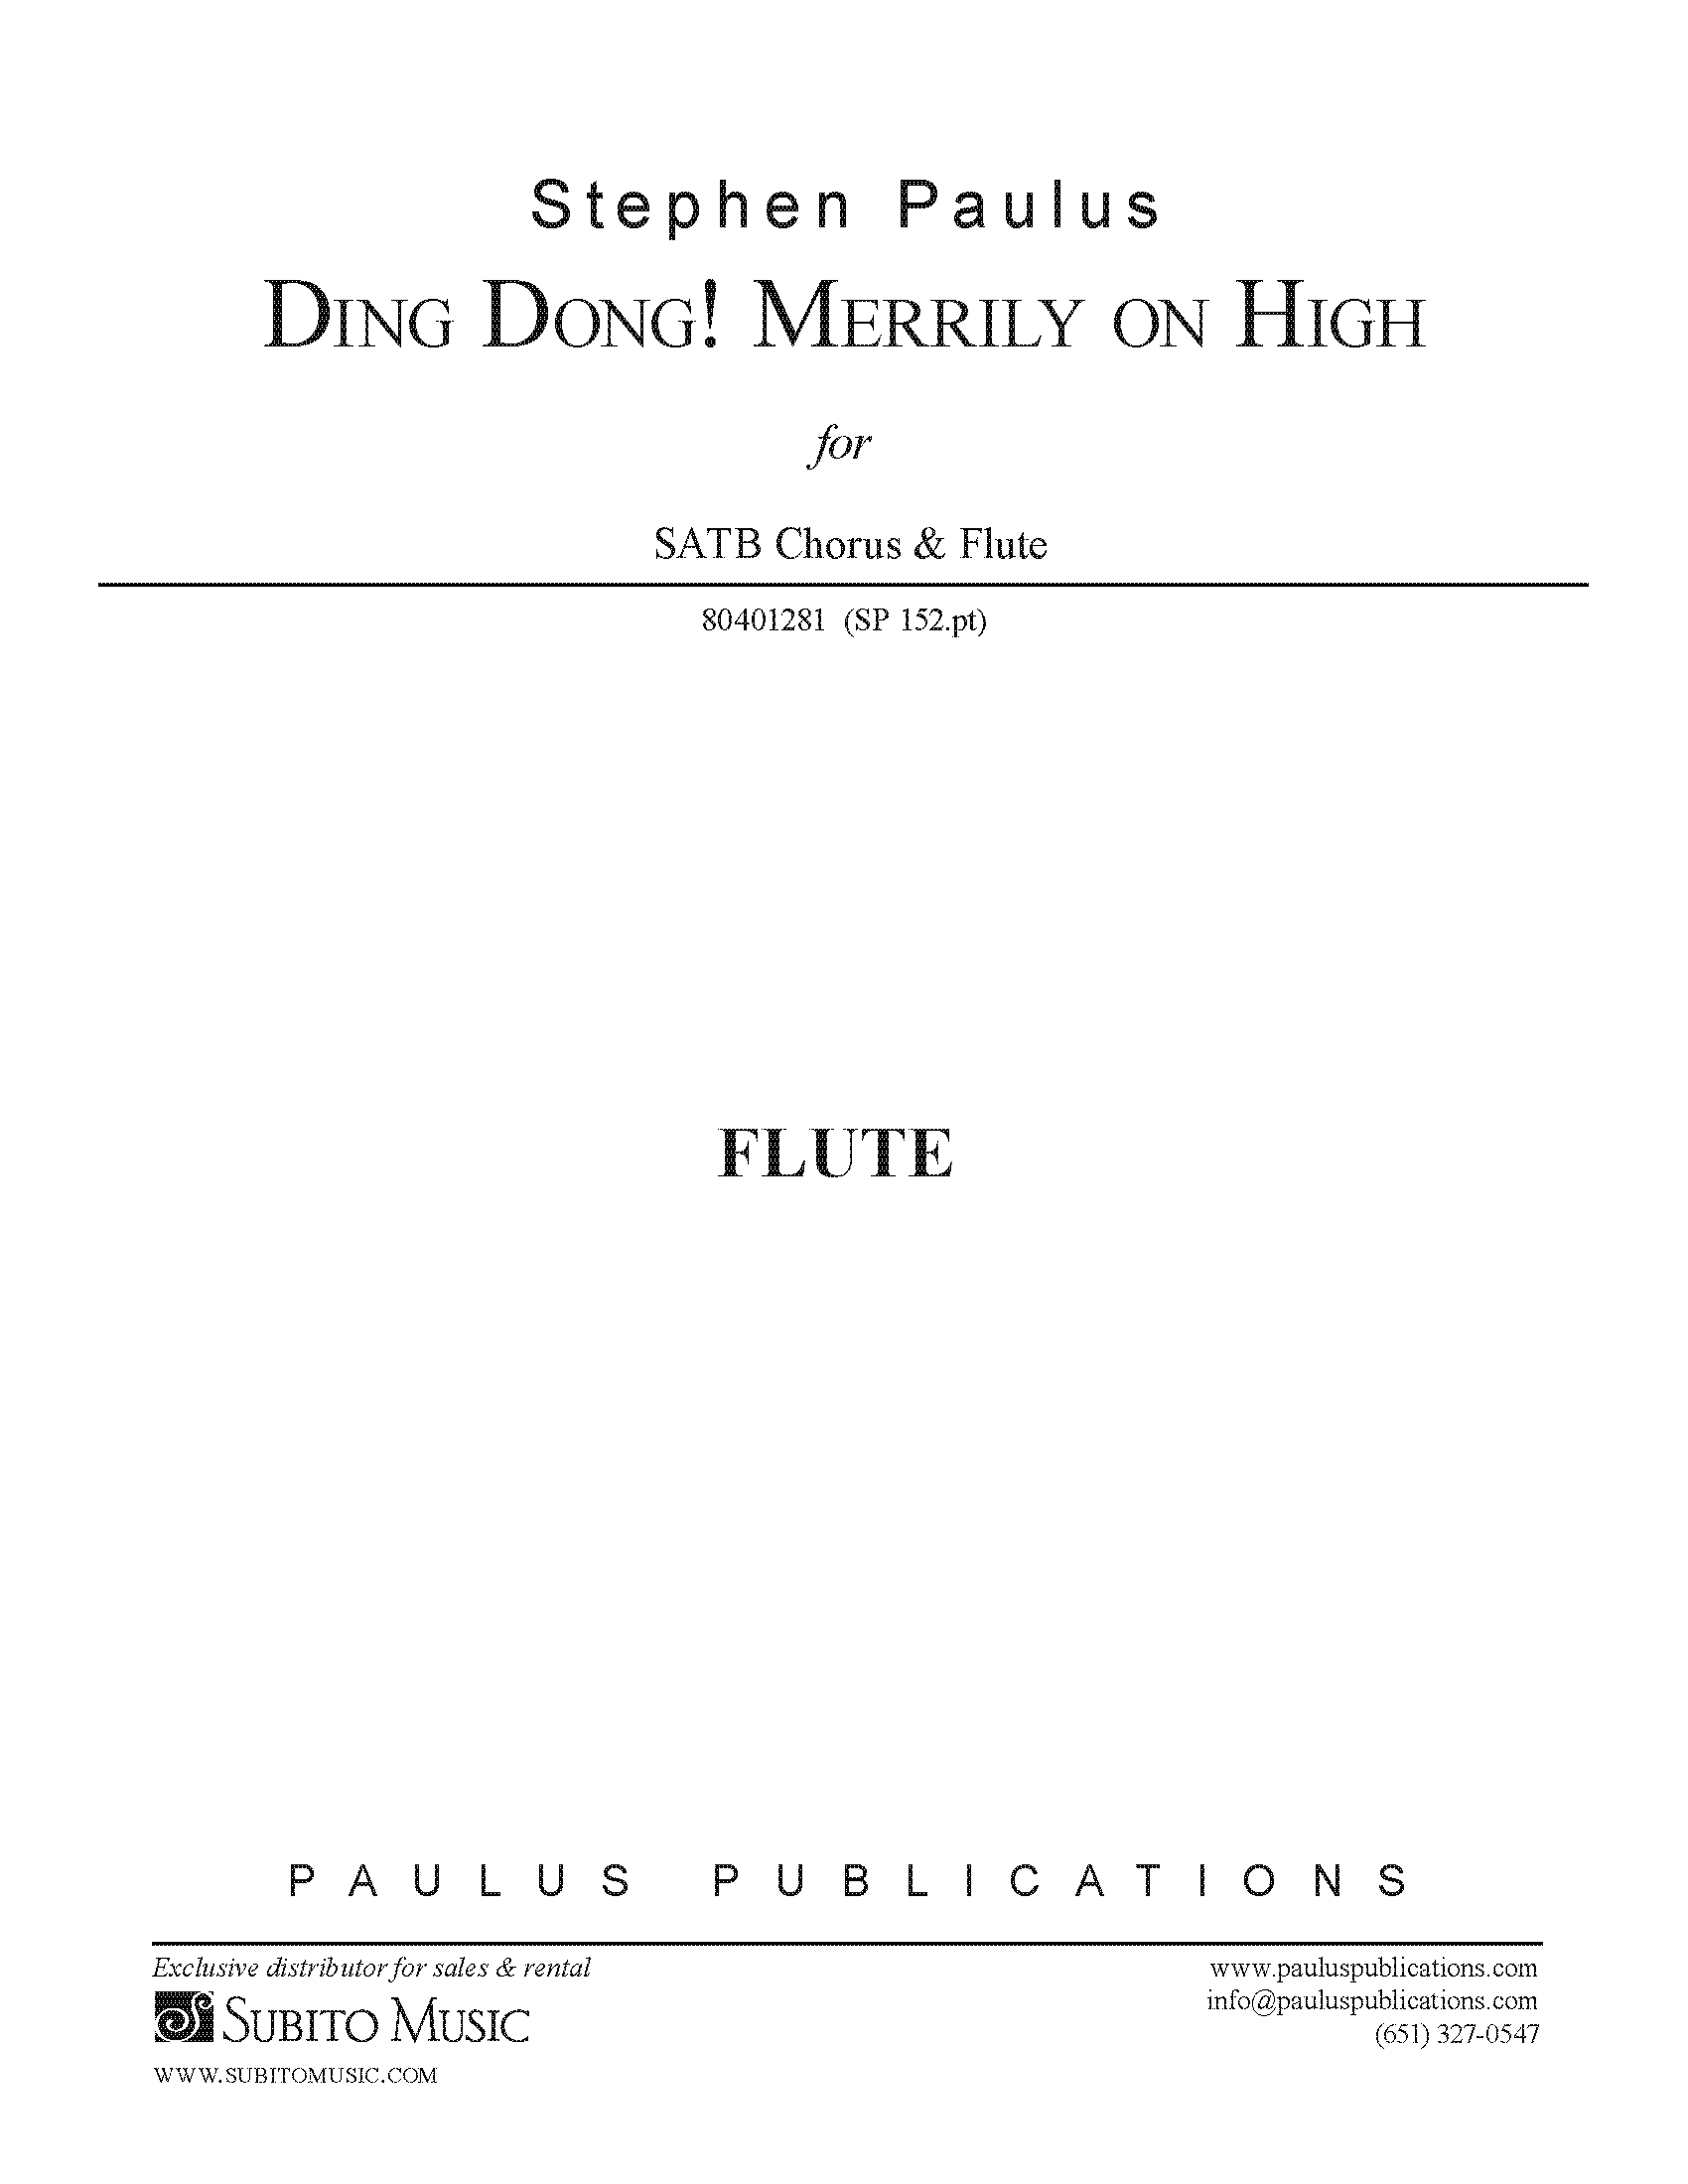 Ding Dong! Merrily on High - FLUTE PART